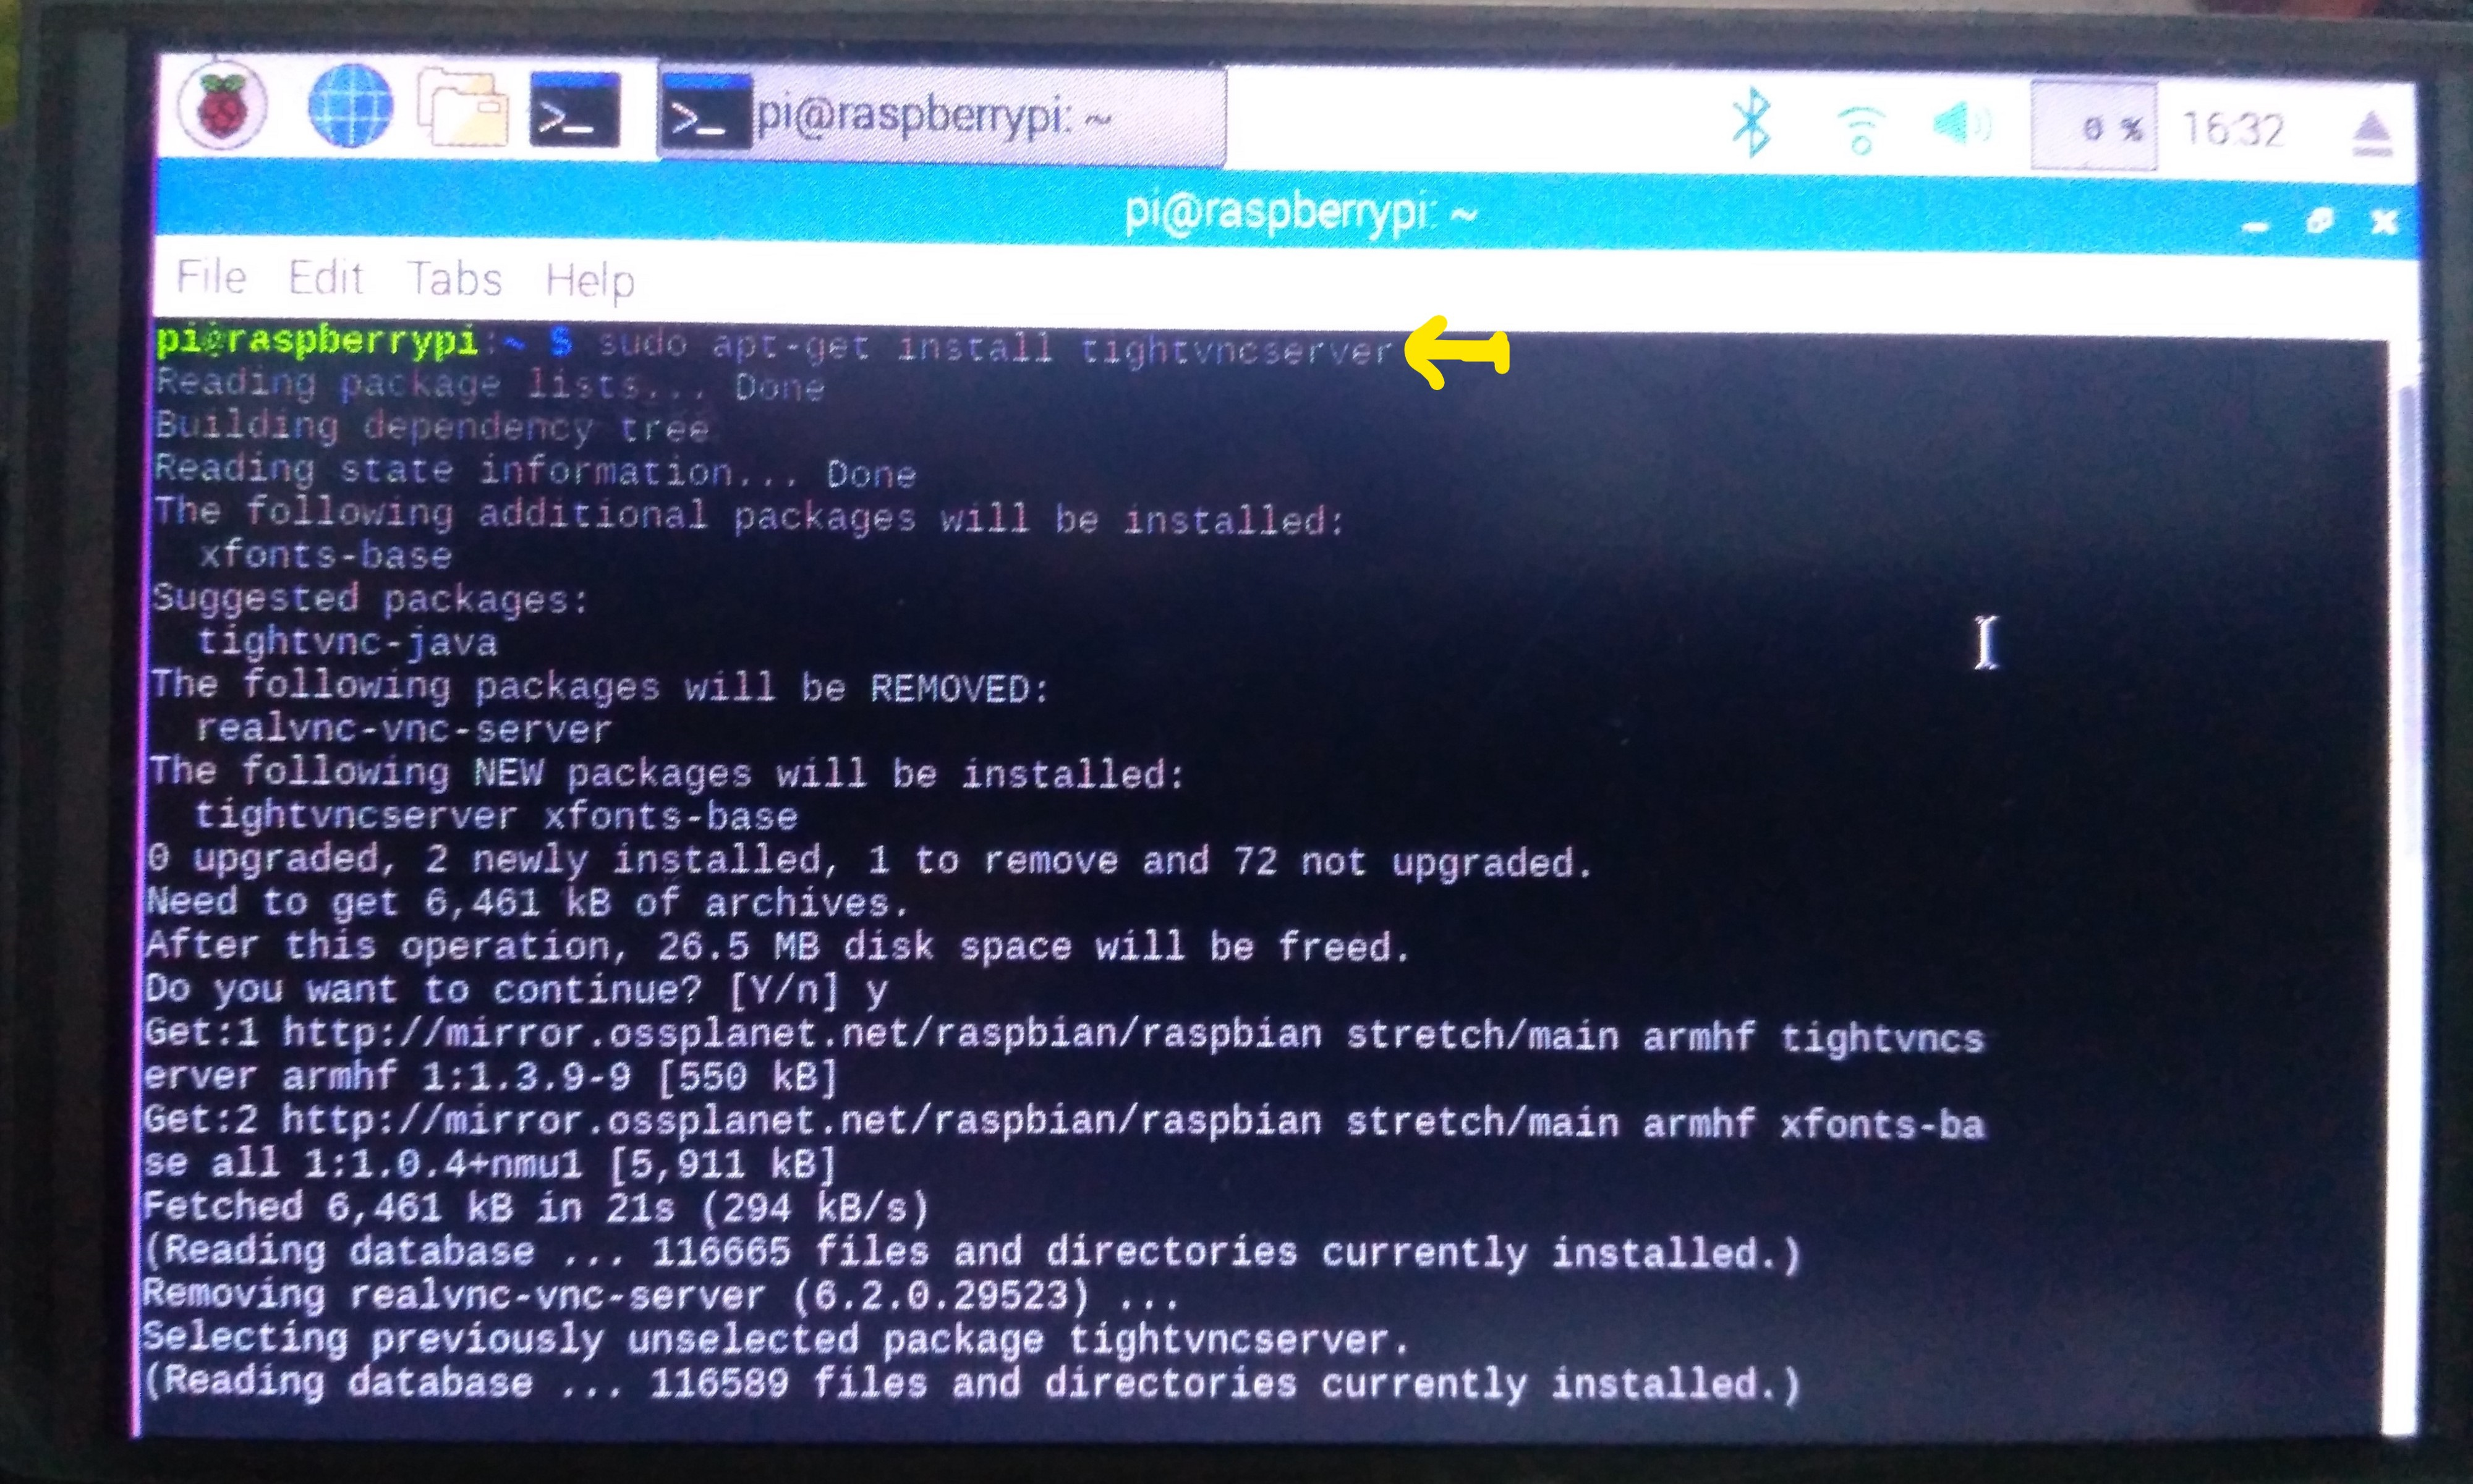 Step by Step guide on running Raspberry pi GUI remotely on